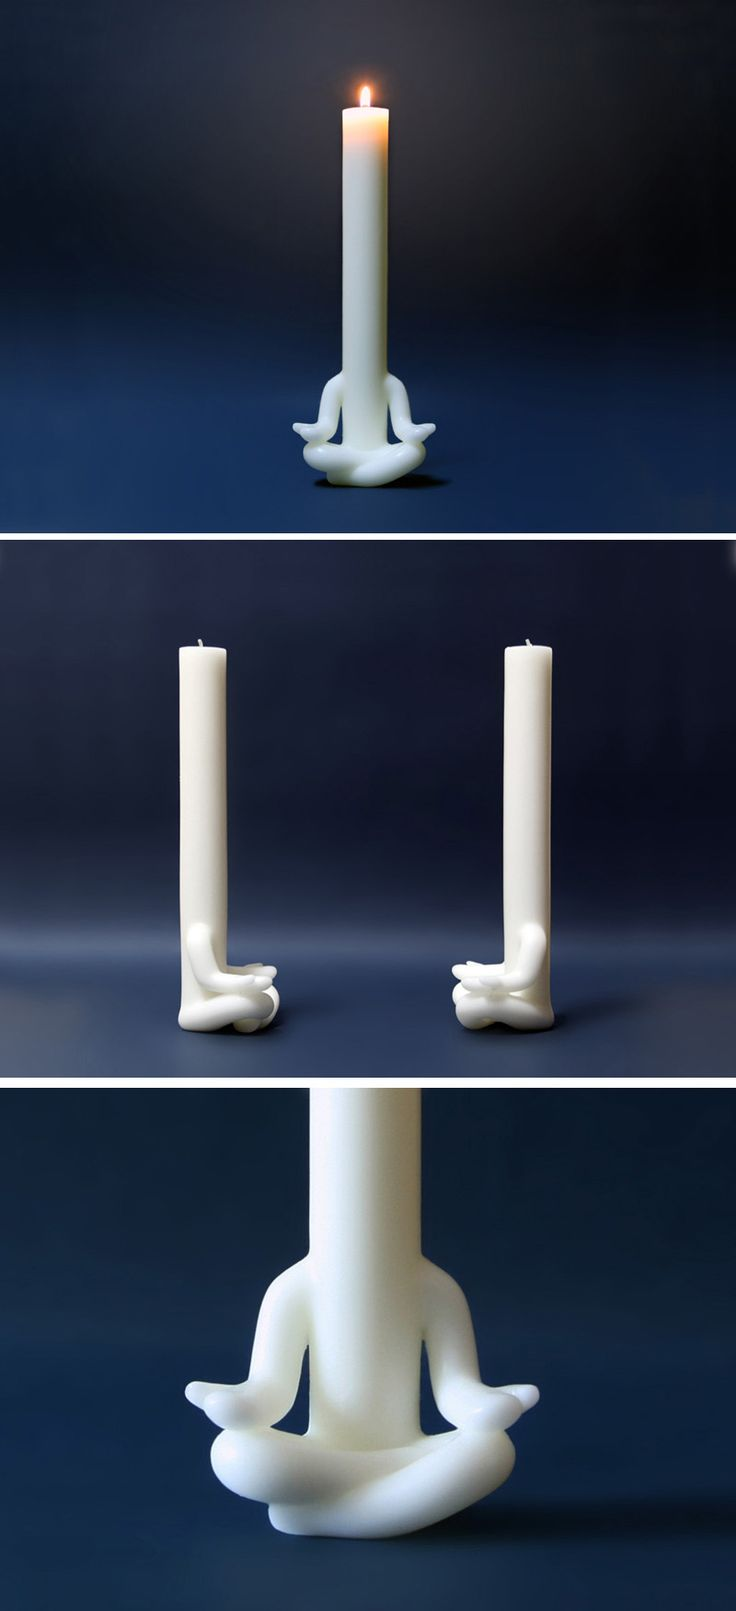 Korean design studio AND (also known as Art N Design) have created Candleman, a little human figure candle that appears to be meditating.